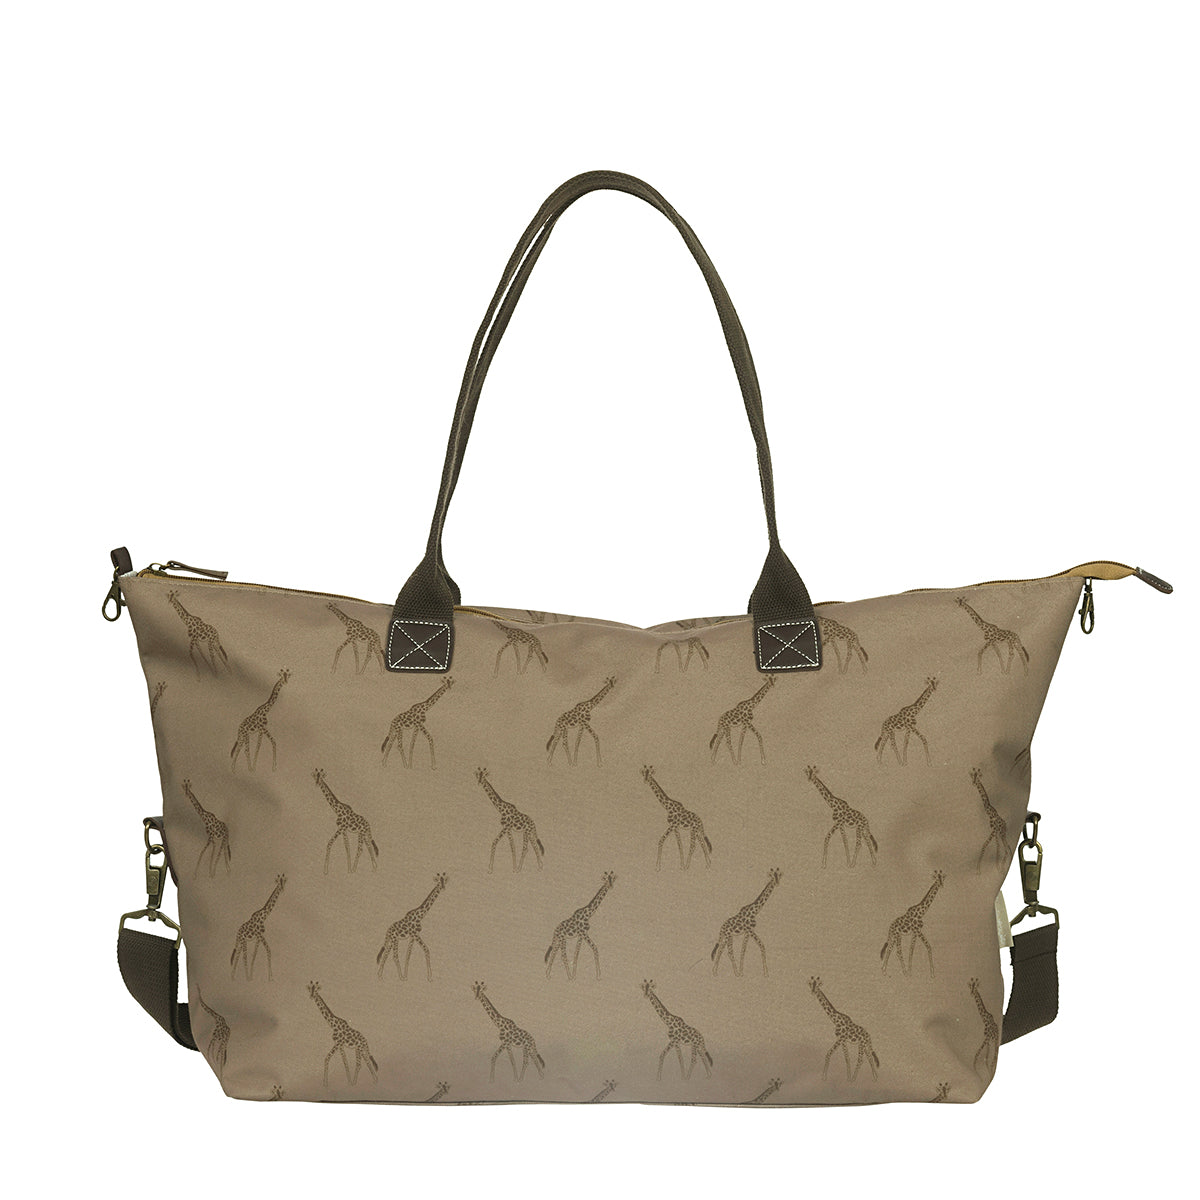 Giraffe Weekend Oundle Bag by Sophie Allport